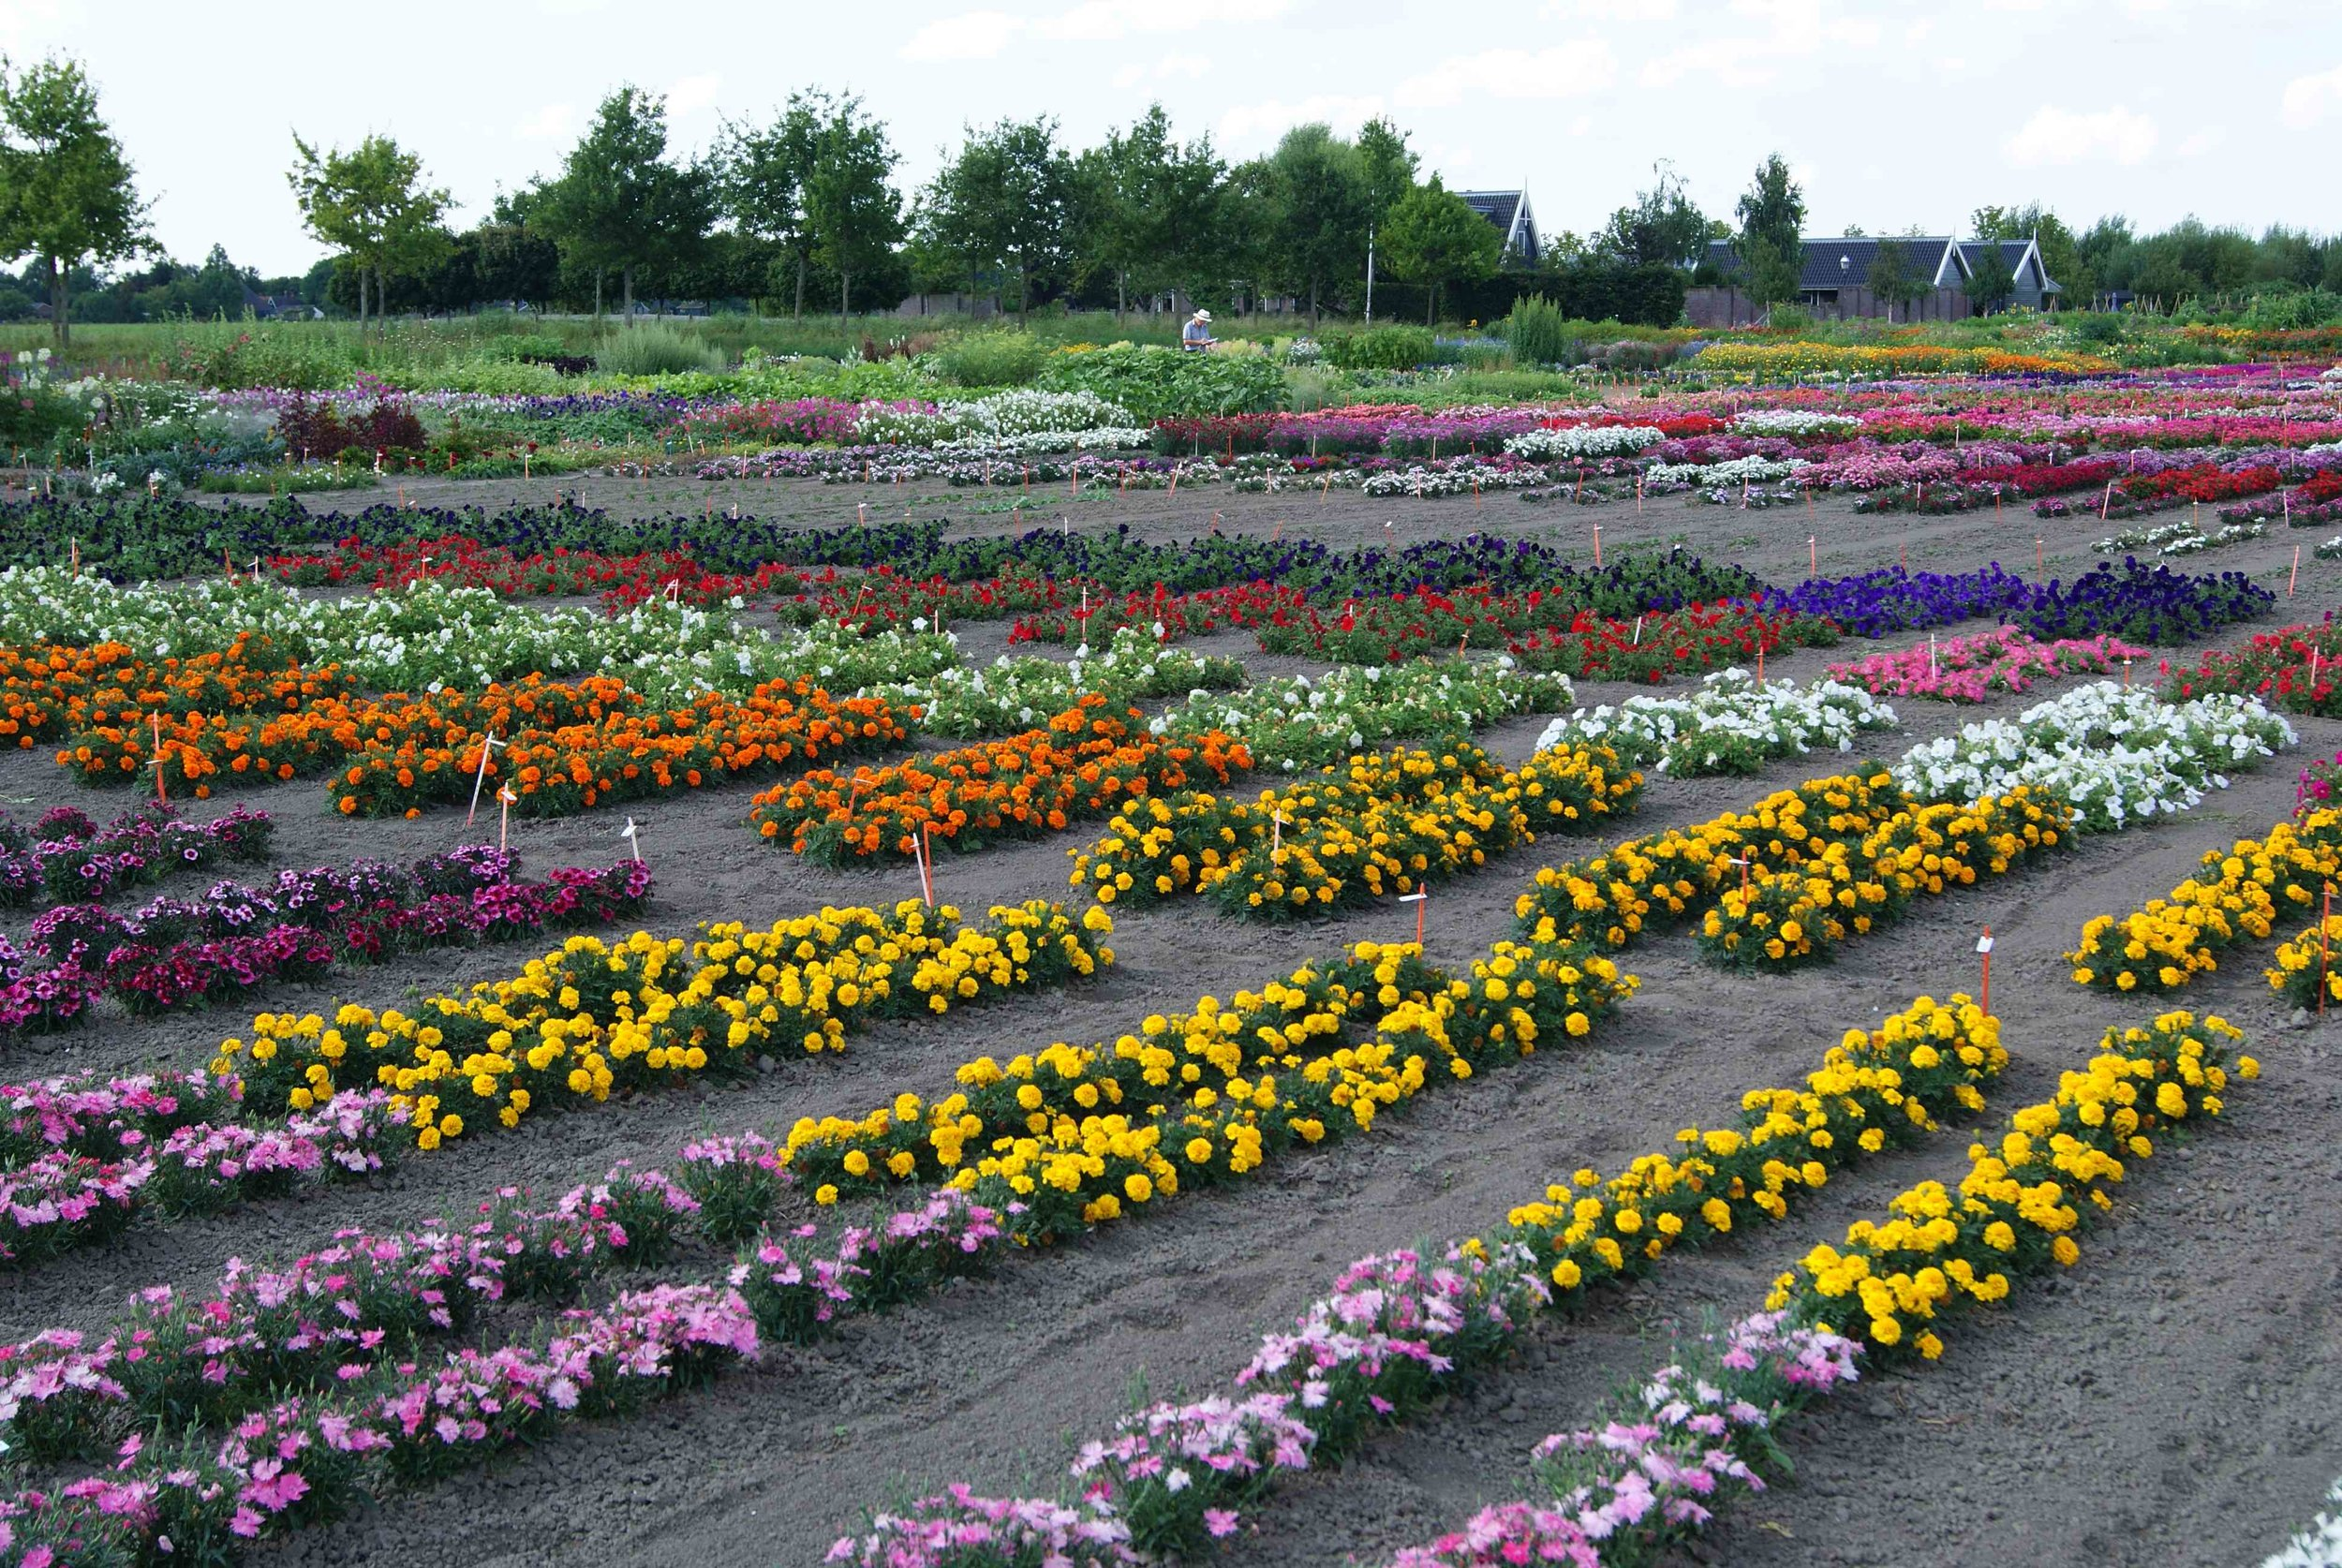 Hem Zaden produces over 3000 plant varieties every year, and exports to over 70 countries.